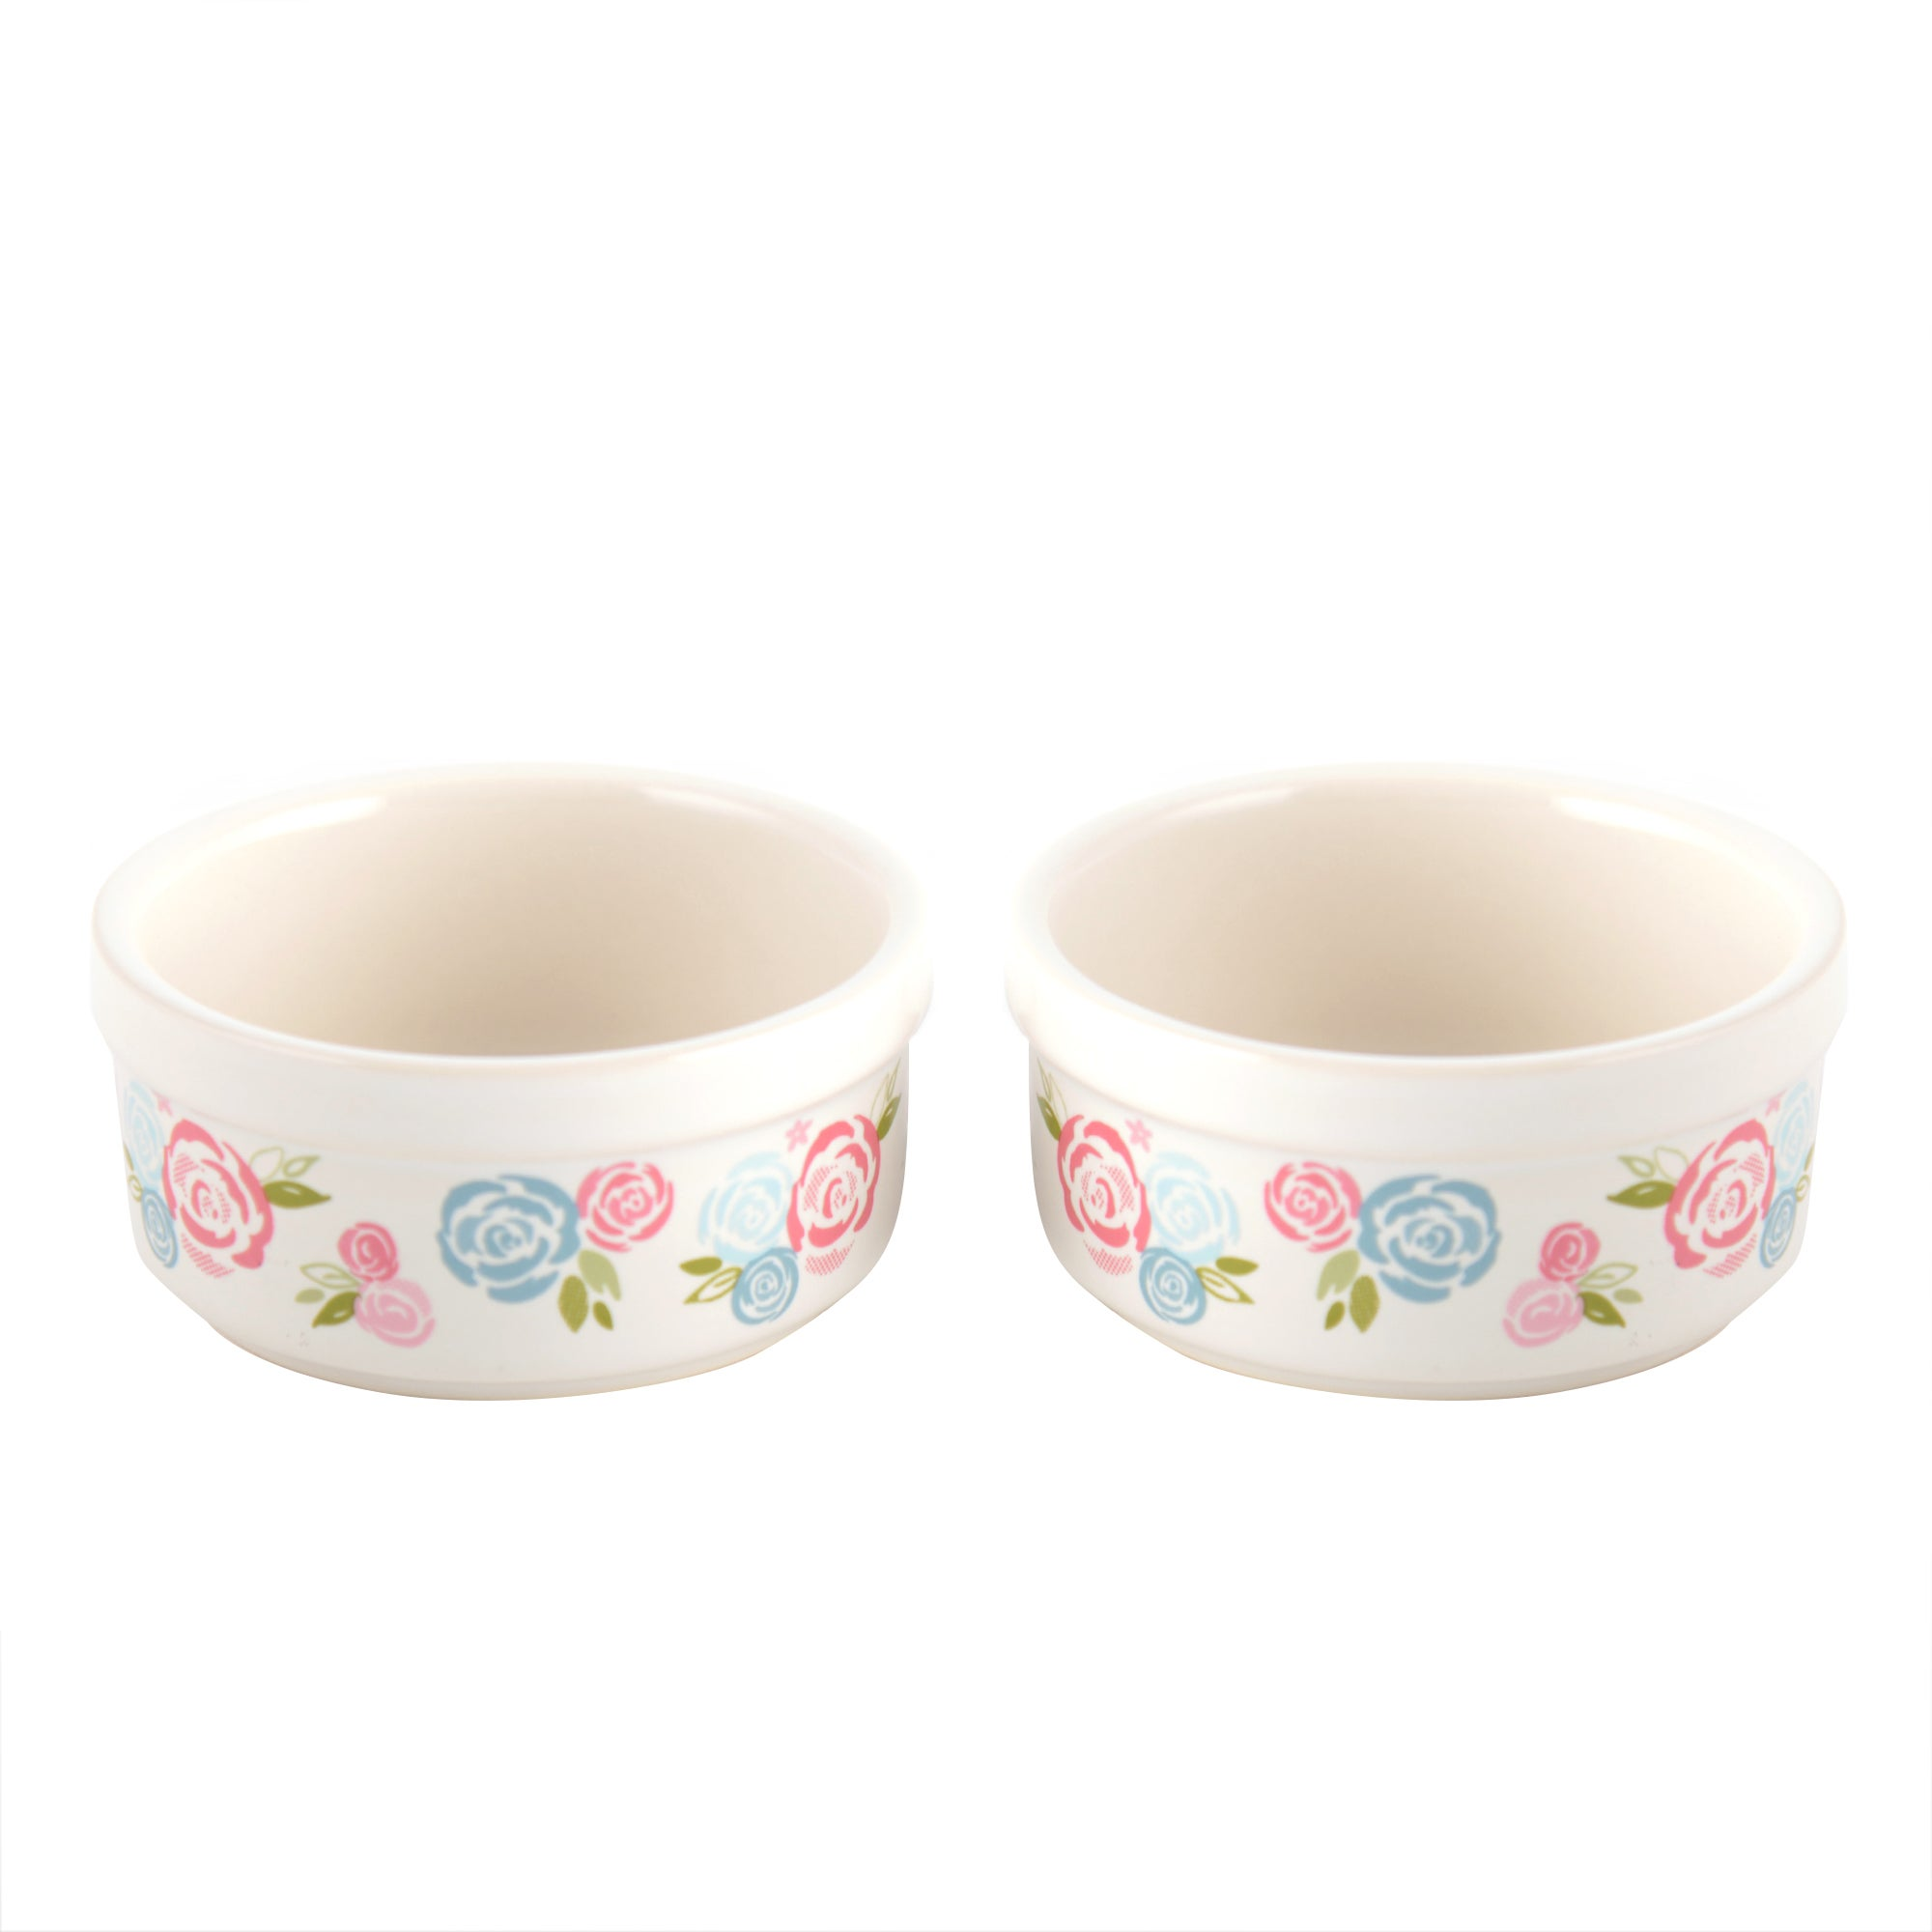 Candy Rose Collection Set of 2 Ramekins